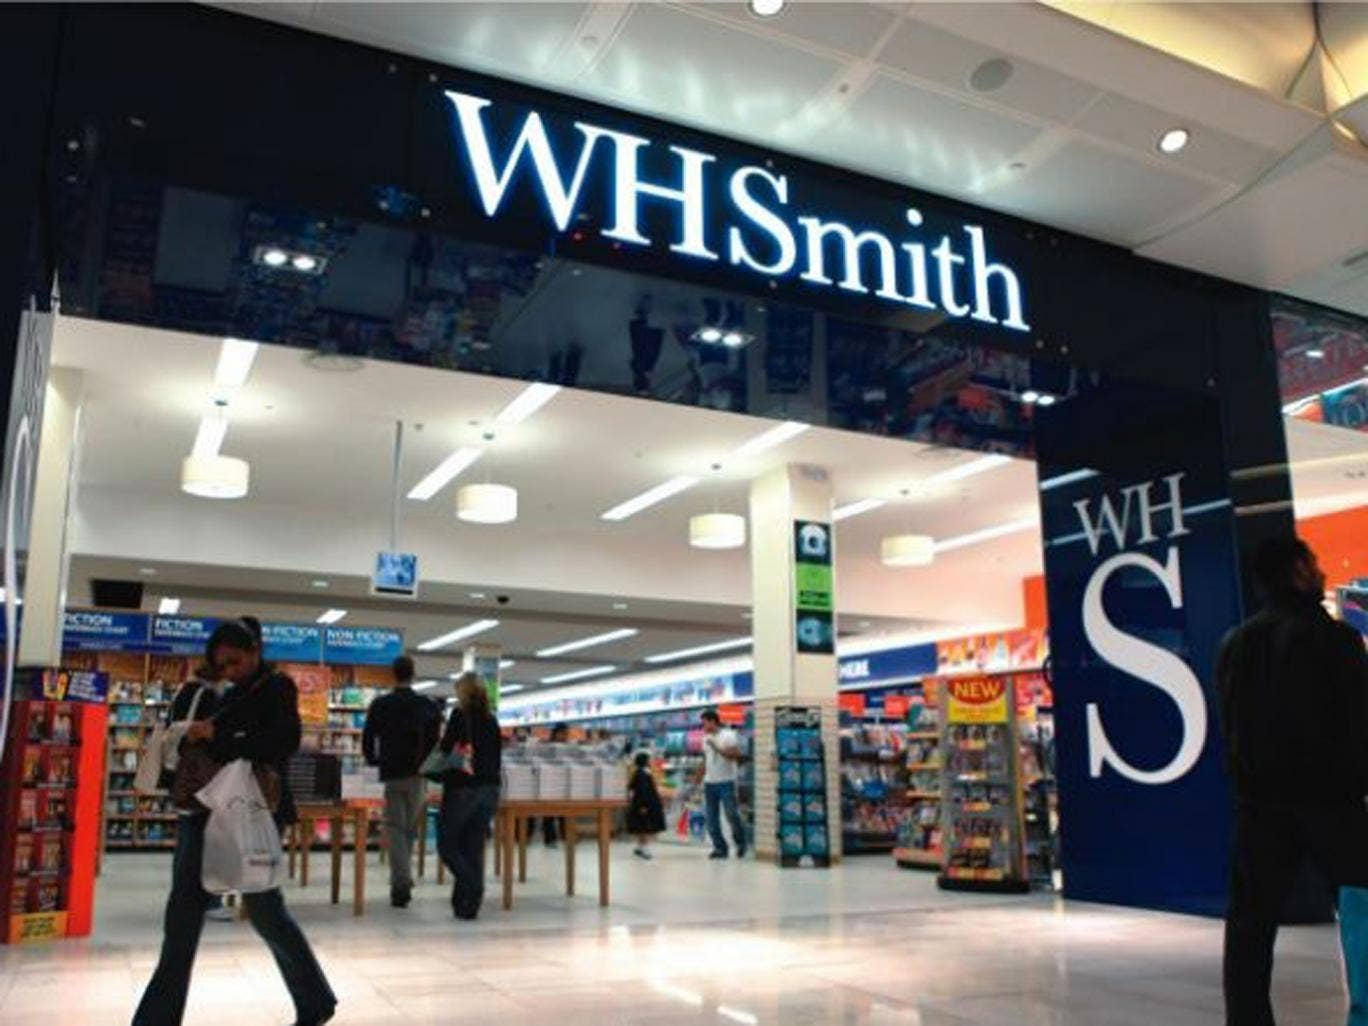 Survey by Which? says respondents called WH Smith stores 'messy' and 'expensive'